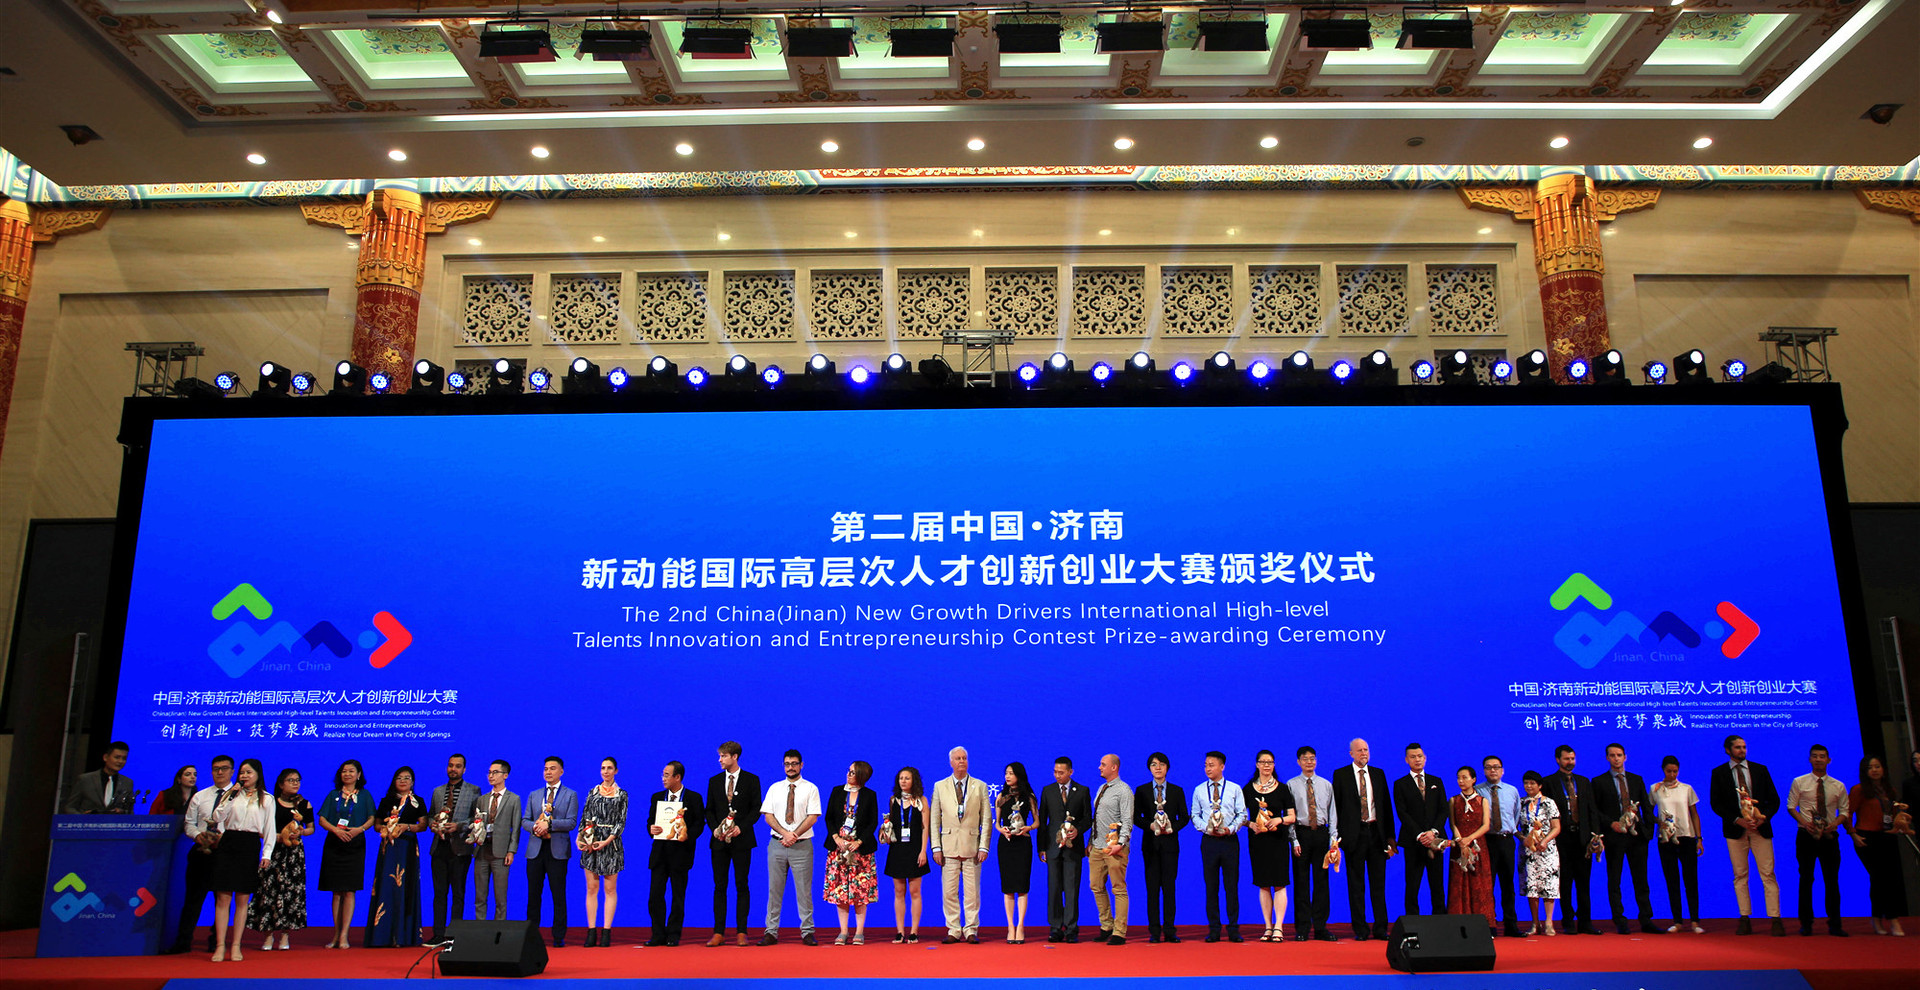 2019 Eureka Innovation & Entrepreneurship Mission To China-Jinan Station|Aussie Team Won 6 Awards!